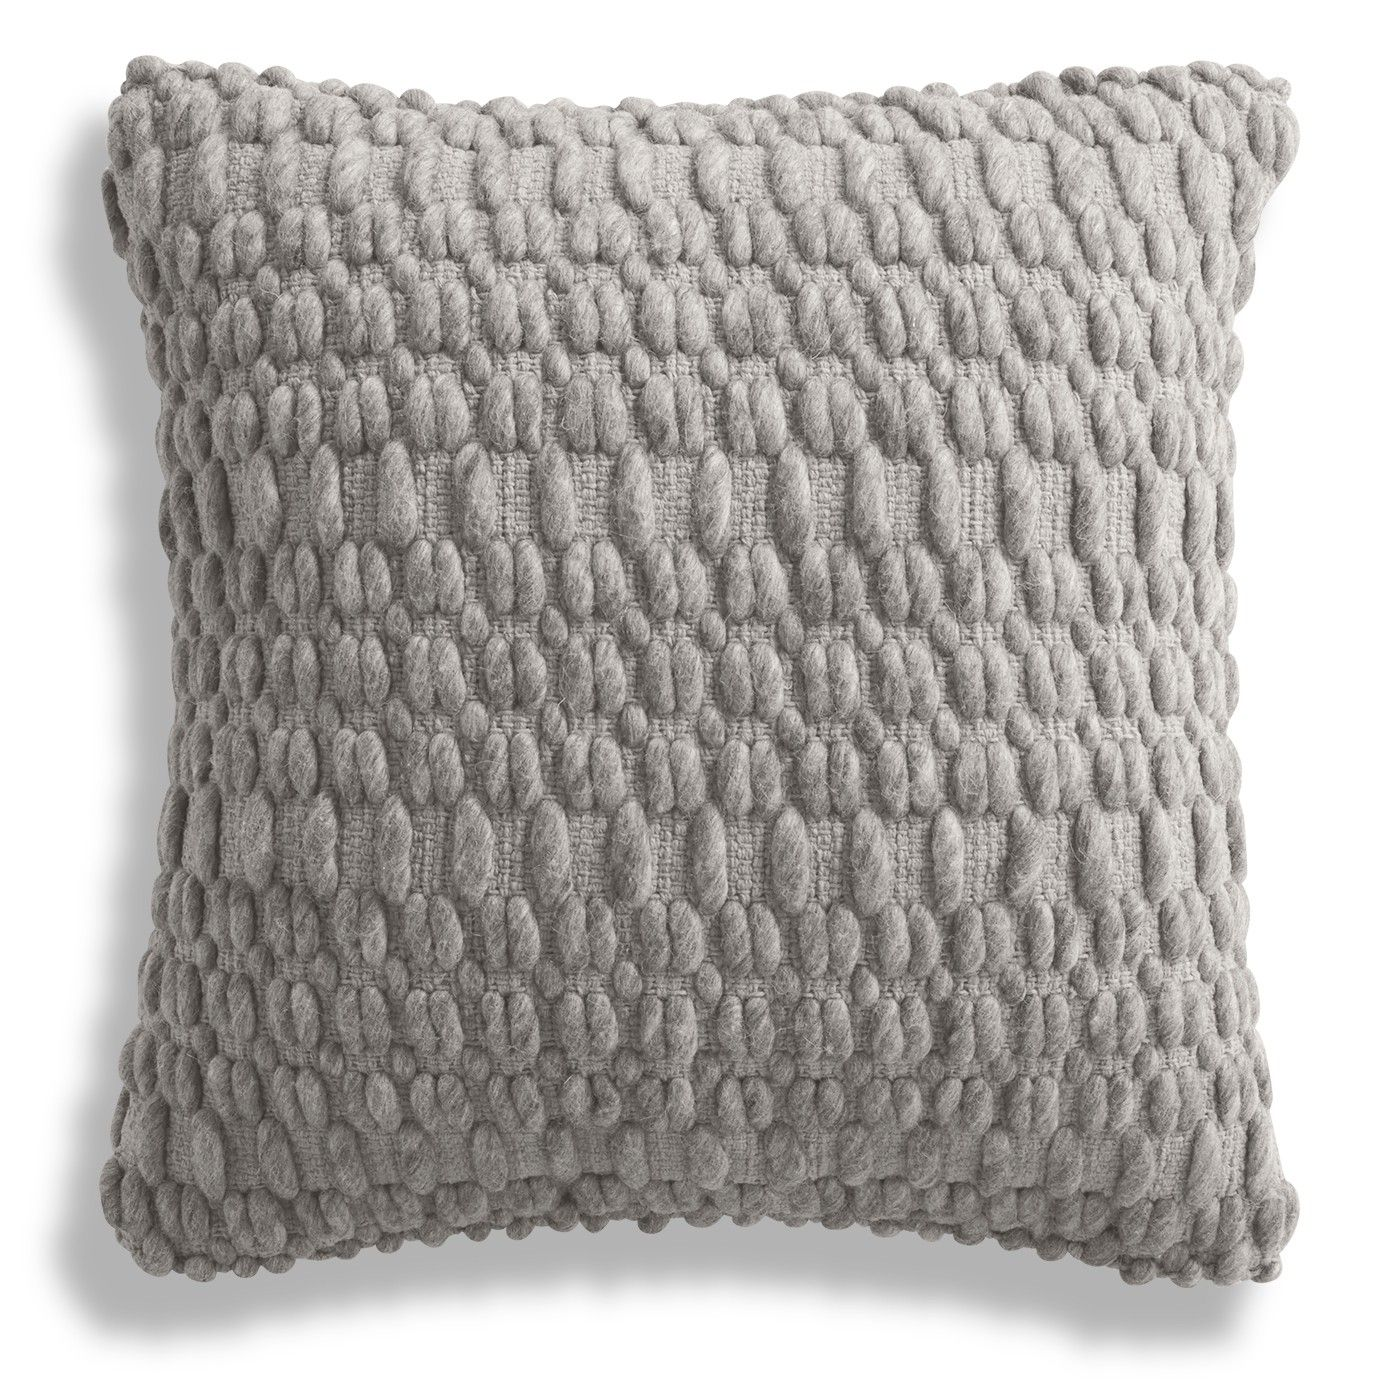 accents with v ice pillows small lili dec woven pillow silver alessandra decorative rectangle beads throw ellie